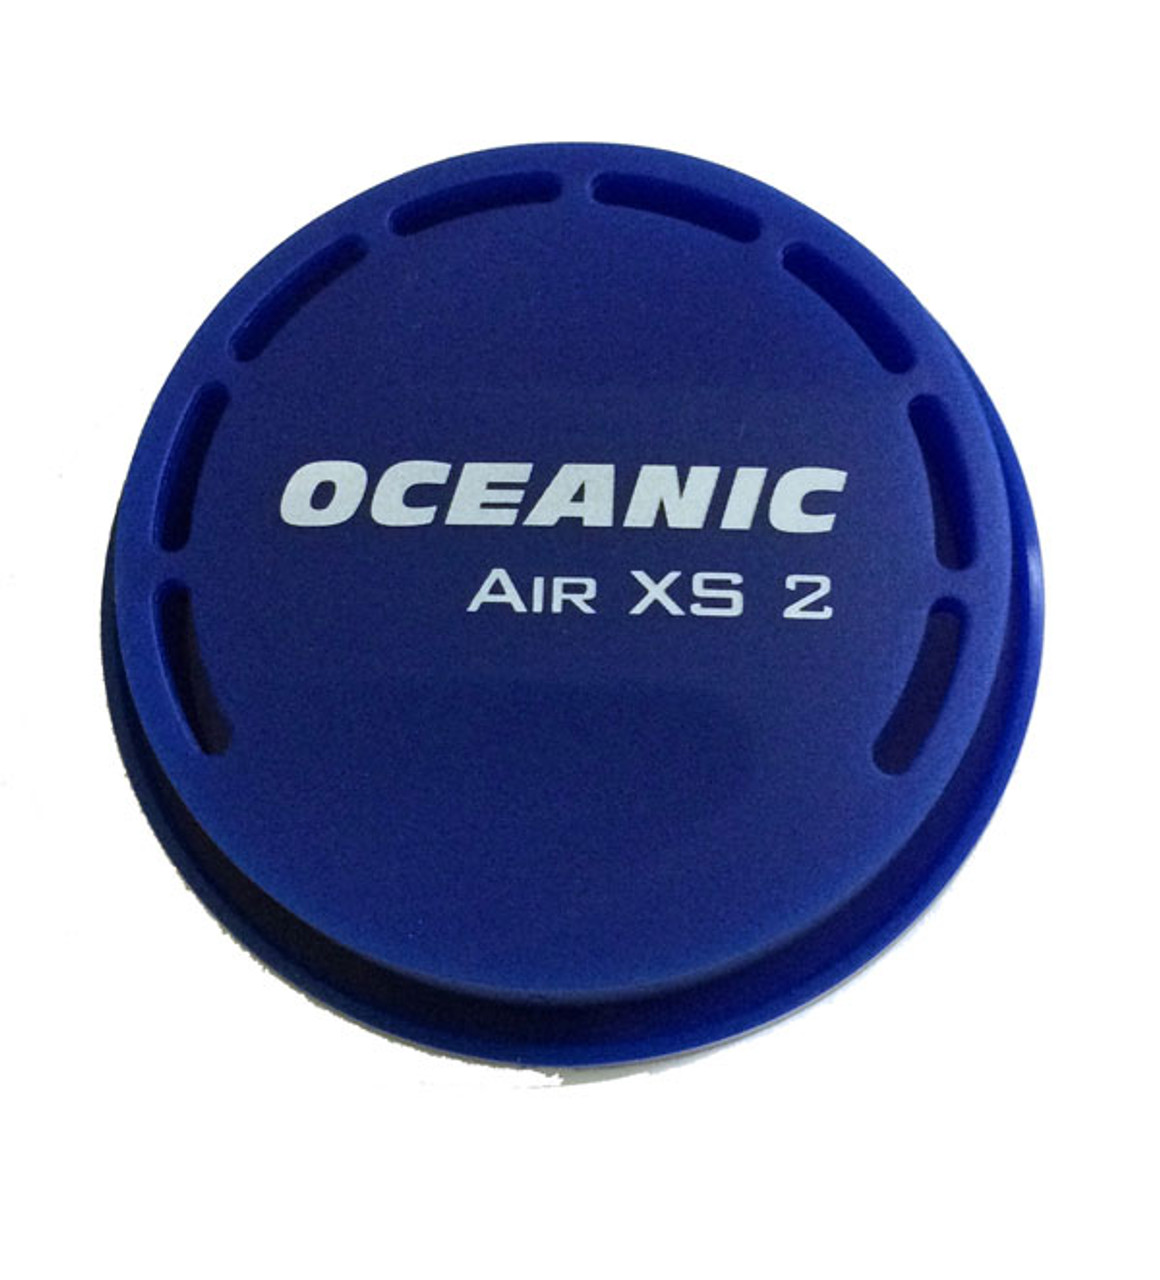 Diaphragm Cover Second Stage Oceanic Air XS 2